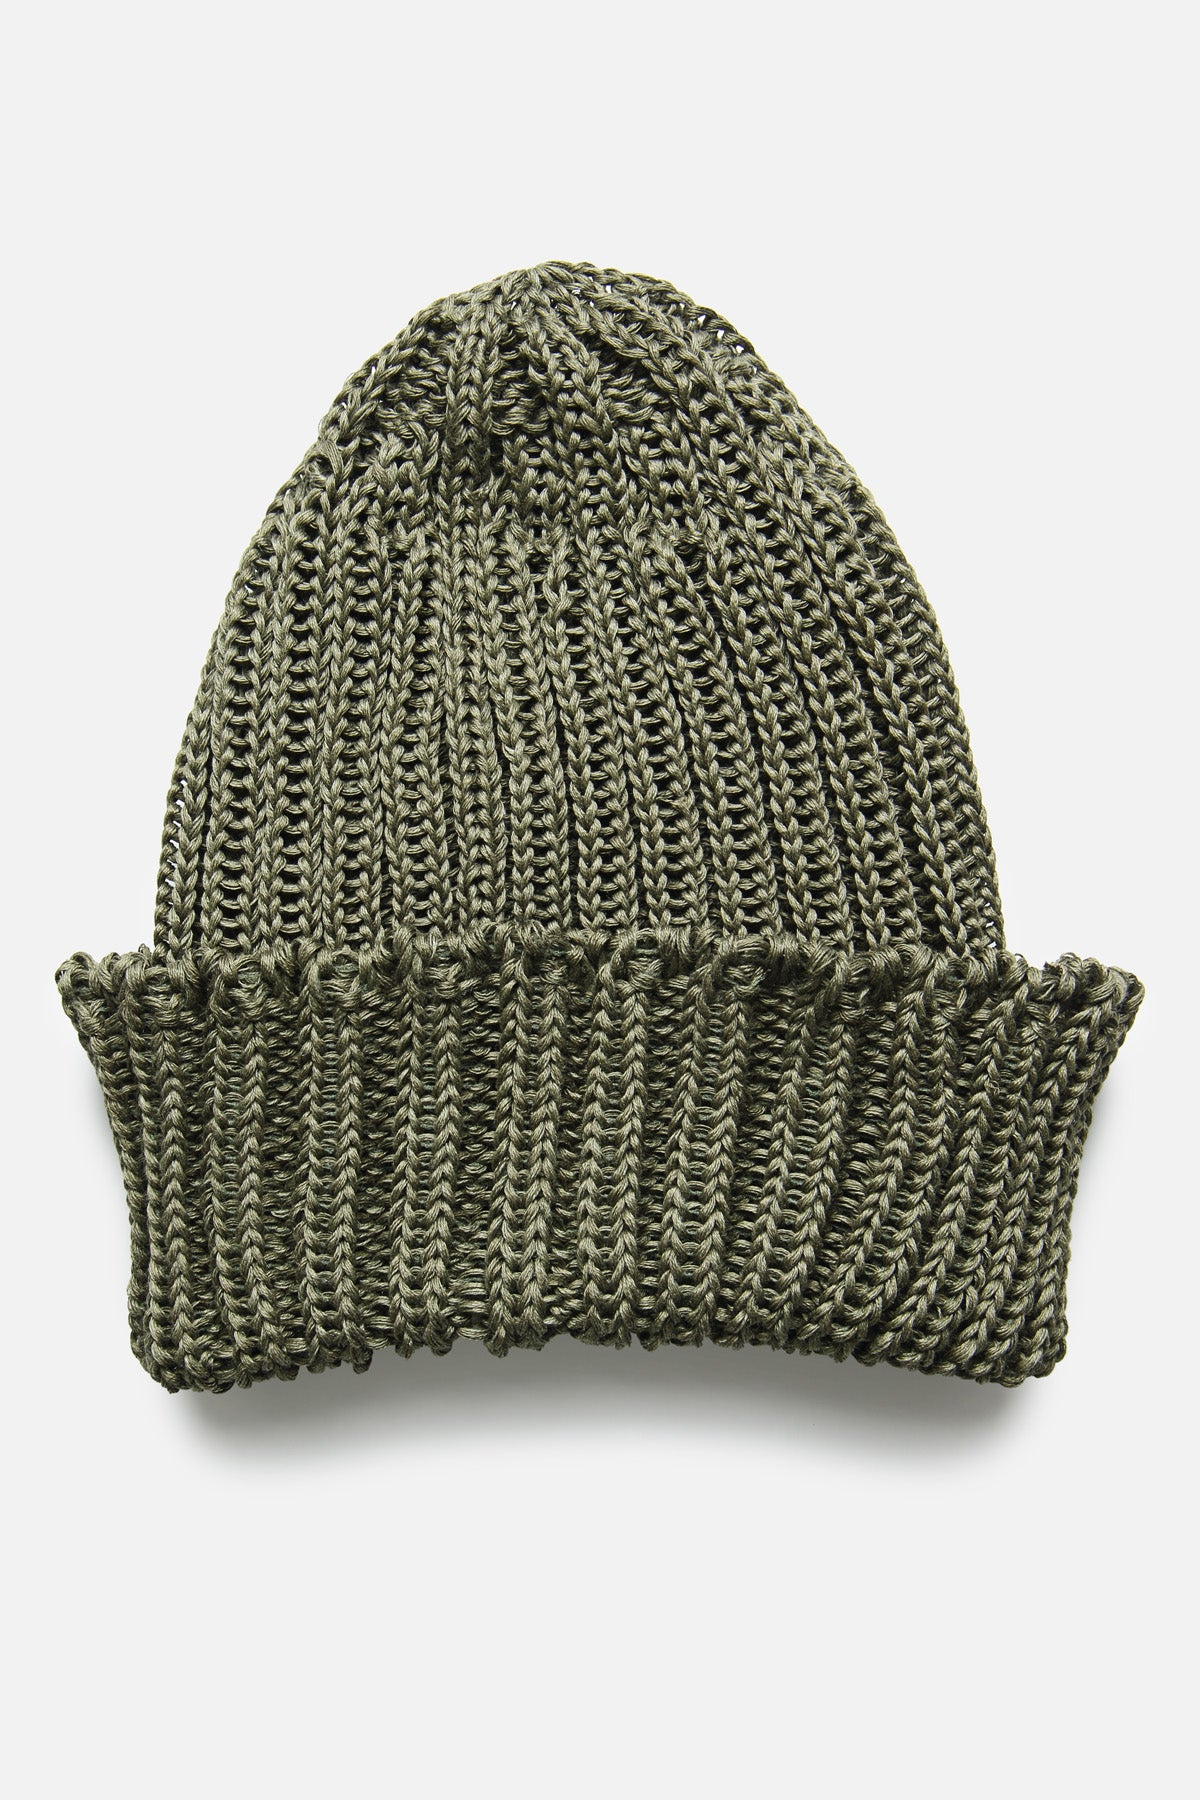 CABLEAMI WATCH CAP IN OLIVE - Fortune Goods